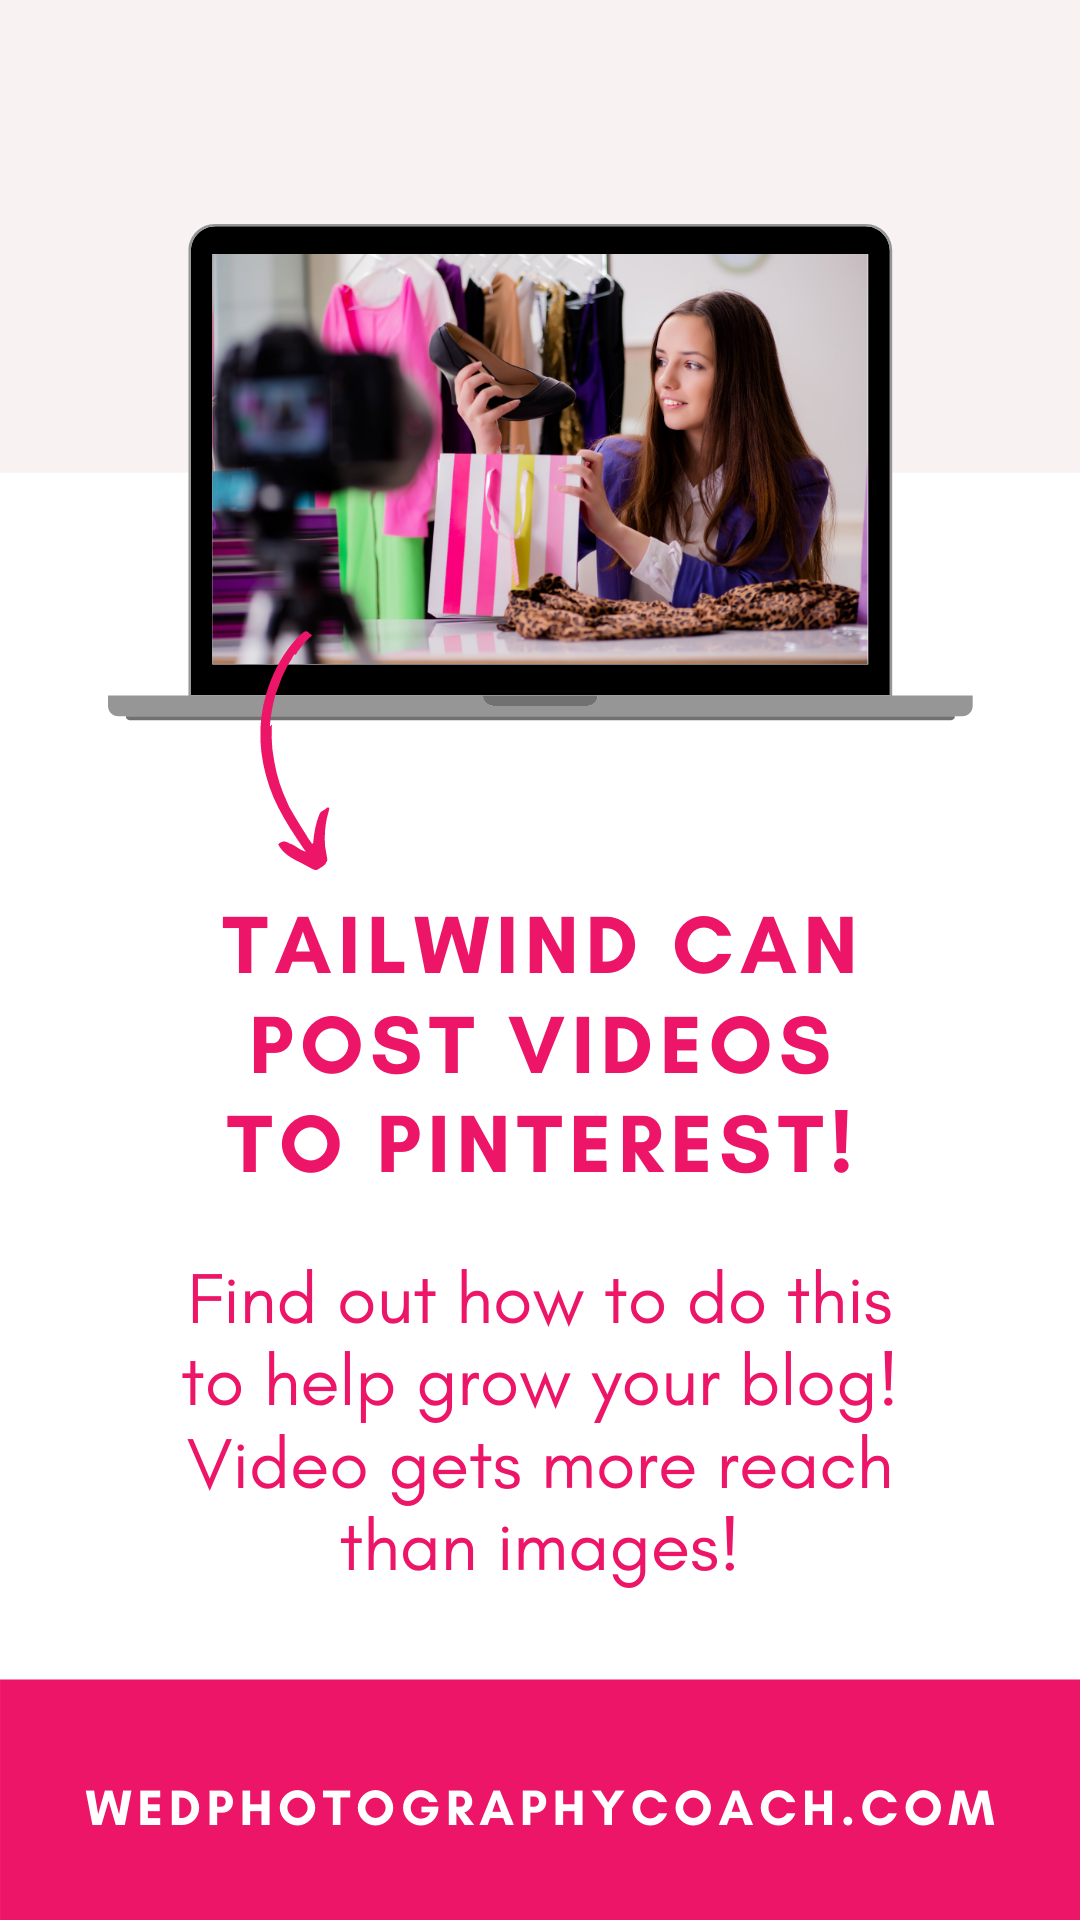 You can post videos with Tailwind! 5